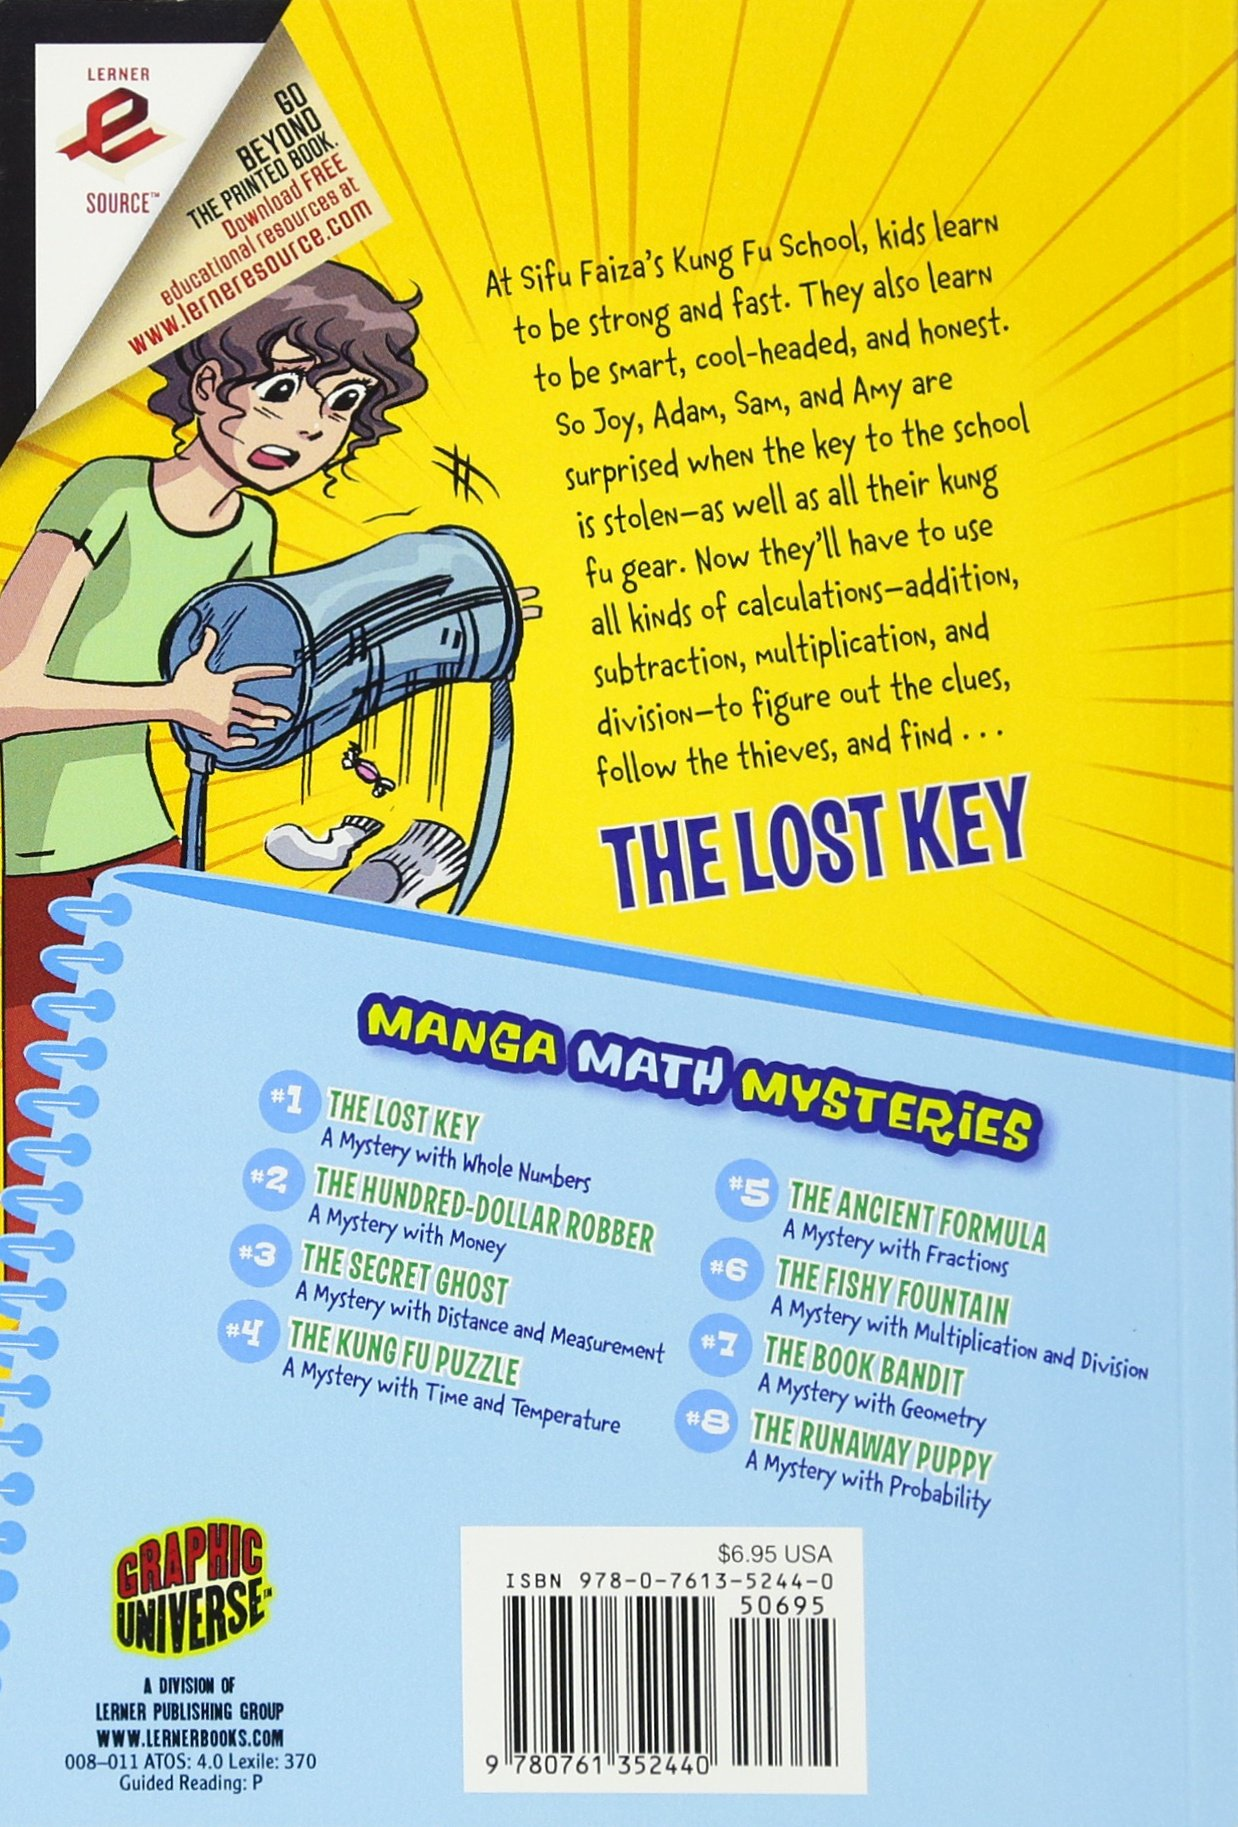 Amazon.com: The Lost Key: A Mystery with Whole Numbers (Manga Math ...